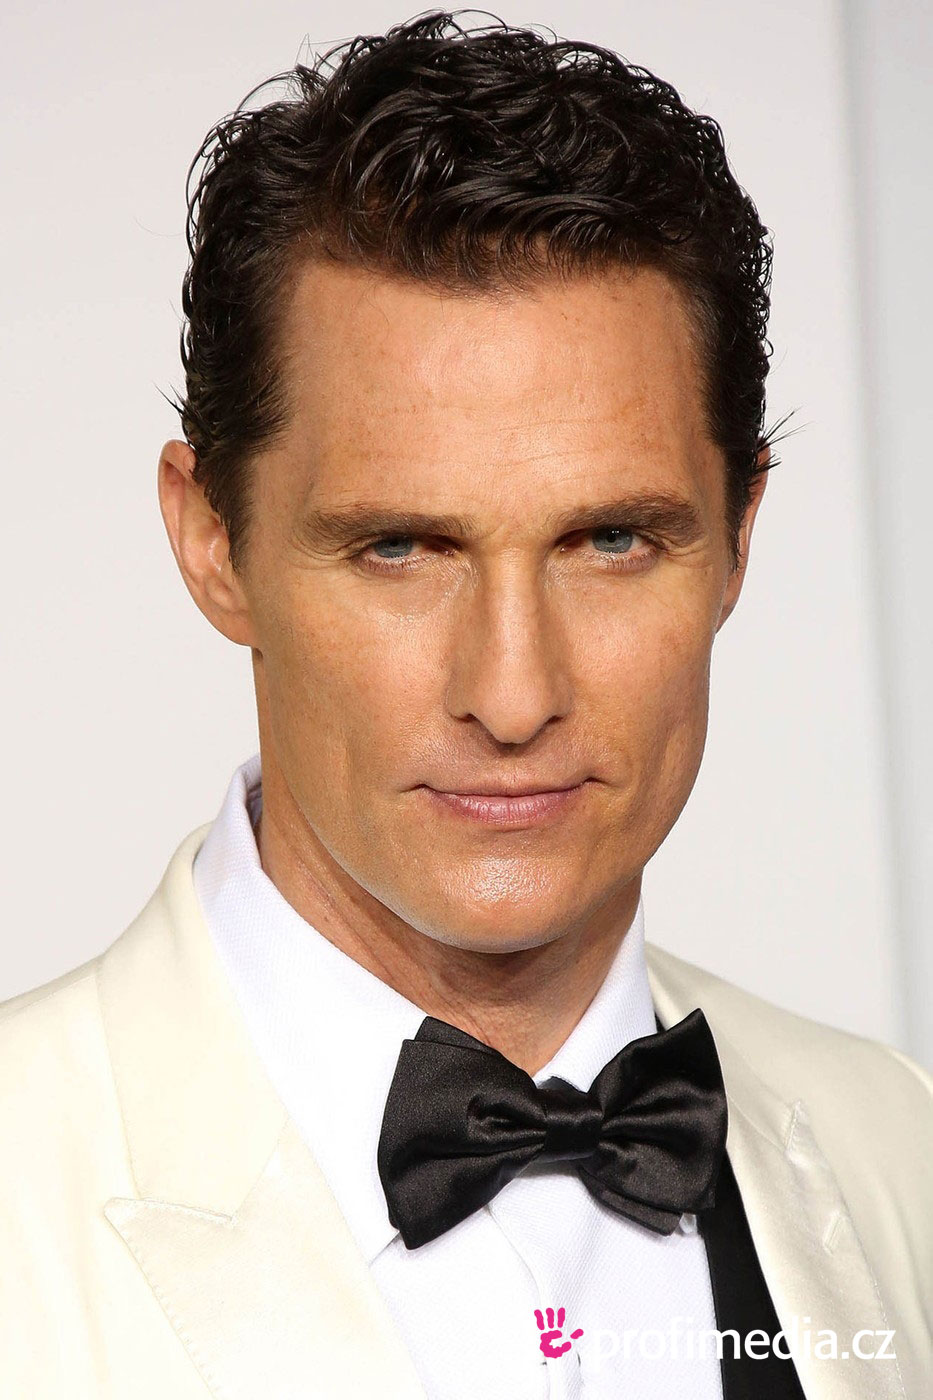 matthew mcconaughey interstellarmatthew mcconaughey youtube, matthew mcconaughey wife, matthew mcconaughey movies, matthew mcconaughey gold, matthew mcconaughey true detective, matthew mcconaughey instagram, matthew mcconaughey height, matthew mcconaughey 2017, matthew mcconaughey oscar, matthew mcconaughey 2016, matthew mcconaughey фильмы, matthew mcconaughey films, matthew mcconaughey lincoln, matthew mcconaughey gif, matthew mcconaughey фильмография, matthew mcconaughey blog, matthew mcconaughey video, matthew mcconaughey tumblr, matthew mcconaughey filmography, matthew mcconaughey interstellar